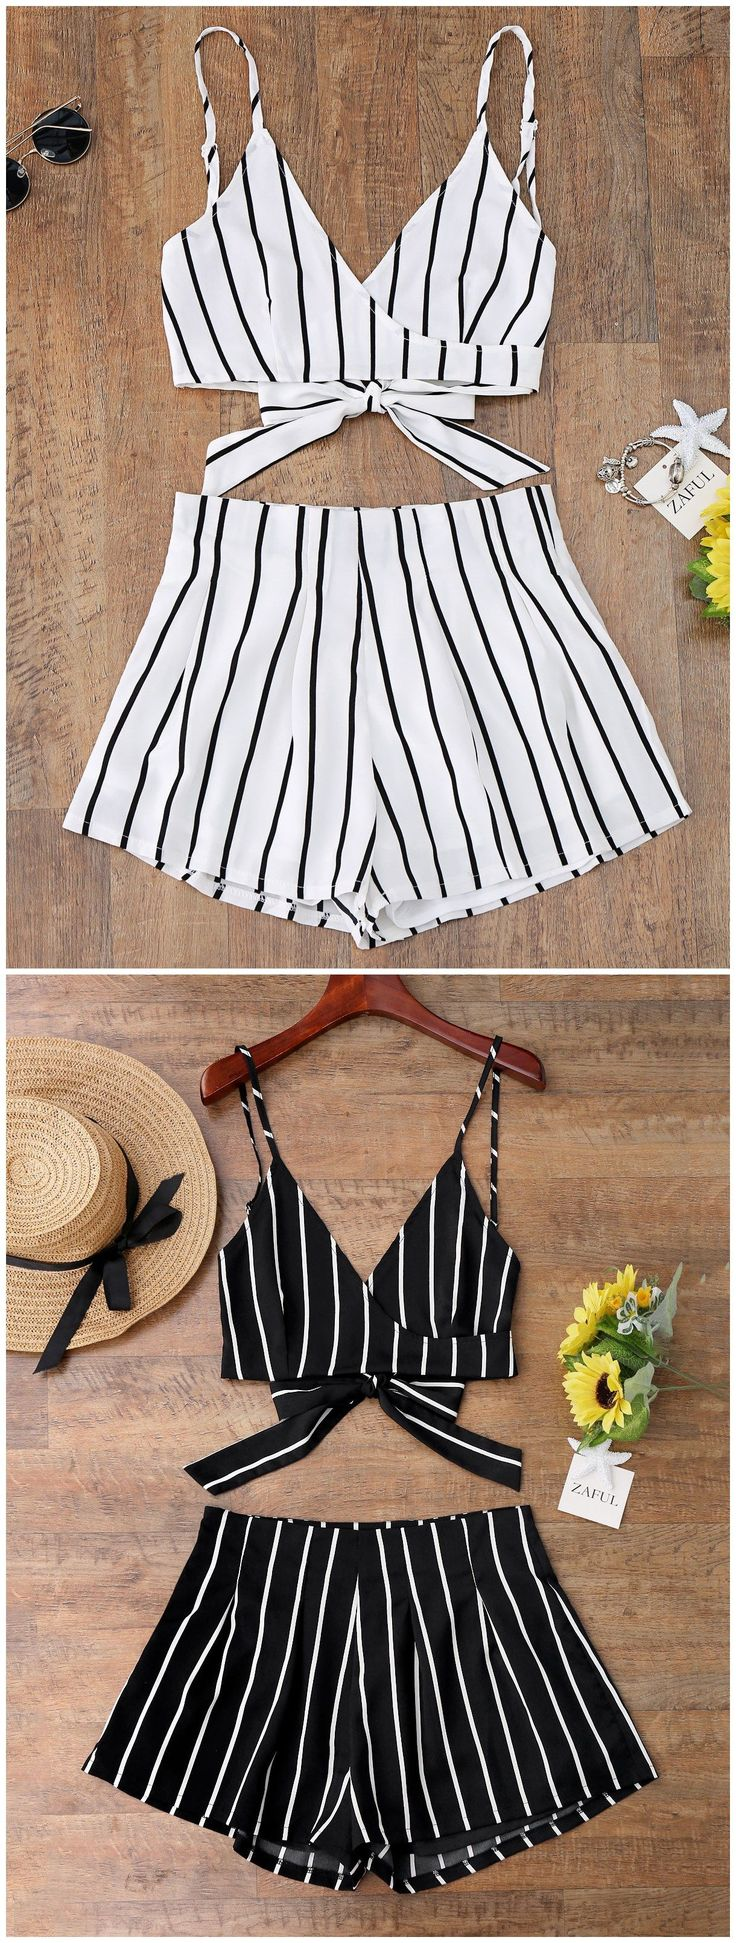 Up to 80% OFF! Striped Cami Wrap Top With Shorts. #Zaful #CoverUps zaful,zaful outfits,zaful dresses,spring outfits,summer dresses,Valentine's Day,valentines day ideas,cute,casual,classy,lace,mesh,fashion,style,swimwear,swimsuits,beach cover ups,swimsuit cover,jumpsuits,rompers,playsuits,dressy jumpsuits,playsuits two piece,two piece outfits,two piece dresses,dresses,printed dresses,sundresses,long sleeve dresses,mini dresses,maxi dresses,bohemian dresses @zaful Extra 10% OFF Code:ZF2017